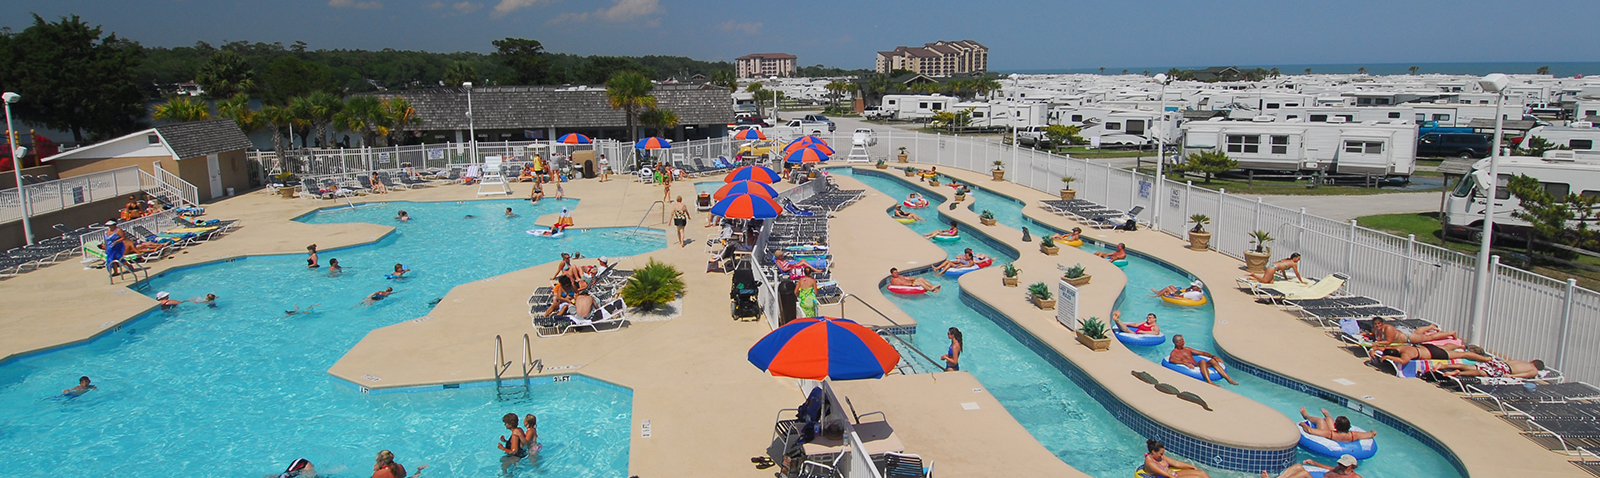 Myrtle Beach Travel Park